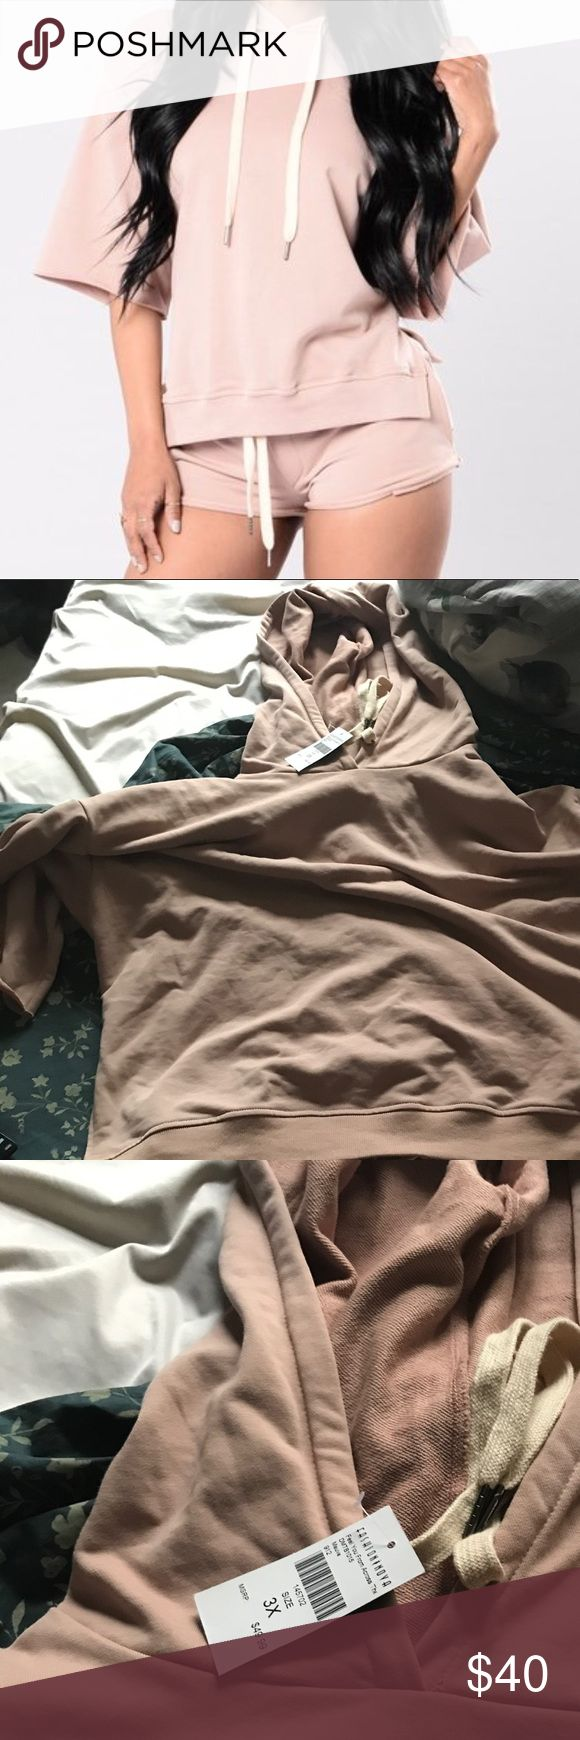 Nude Short set Very comfortable short set. Shorts are short. Size 3x fits like a size 18-20. Never worn. New with tags. From fashion Nova curve Tops Sweatshirts & Hoodies